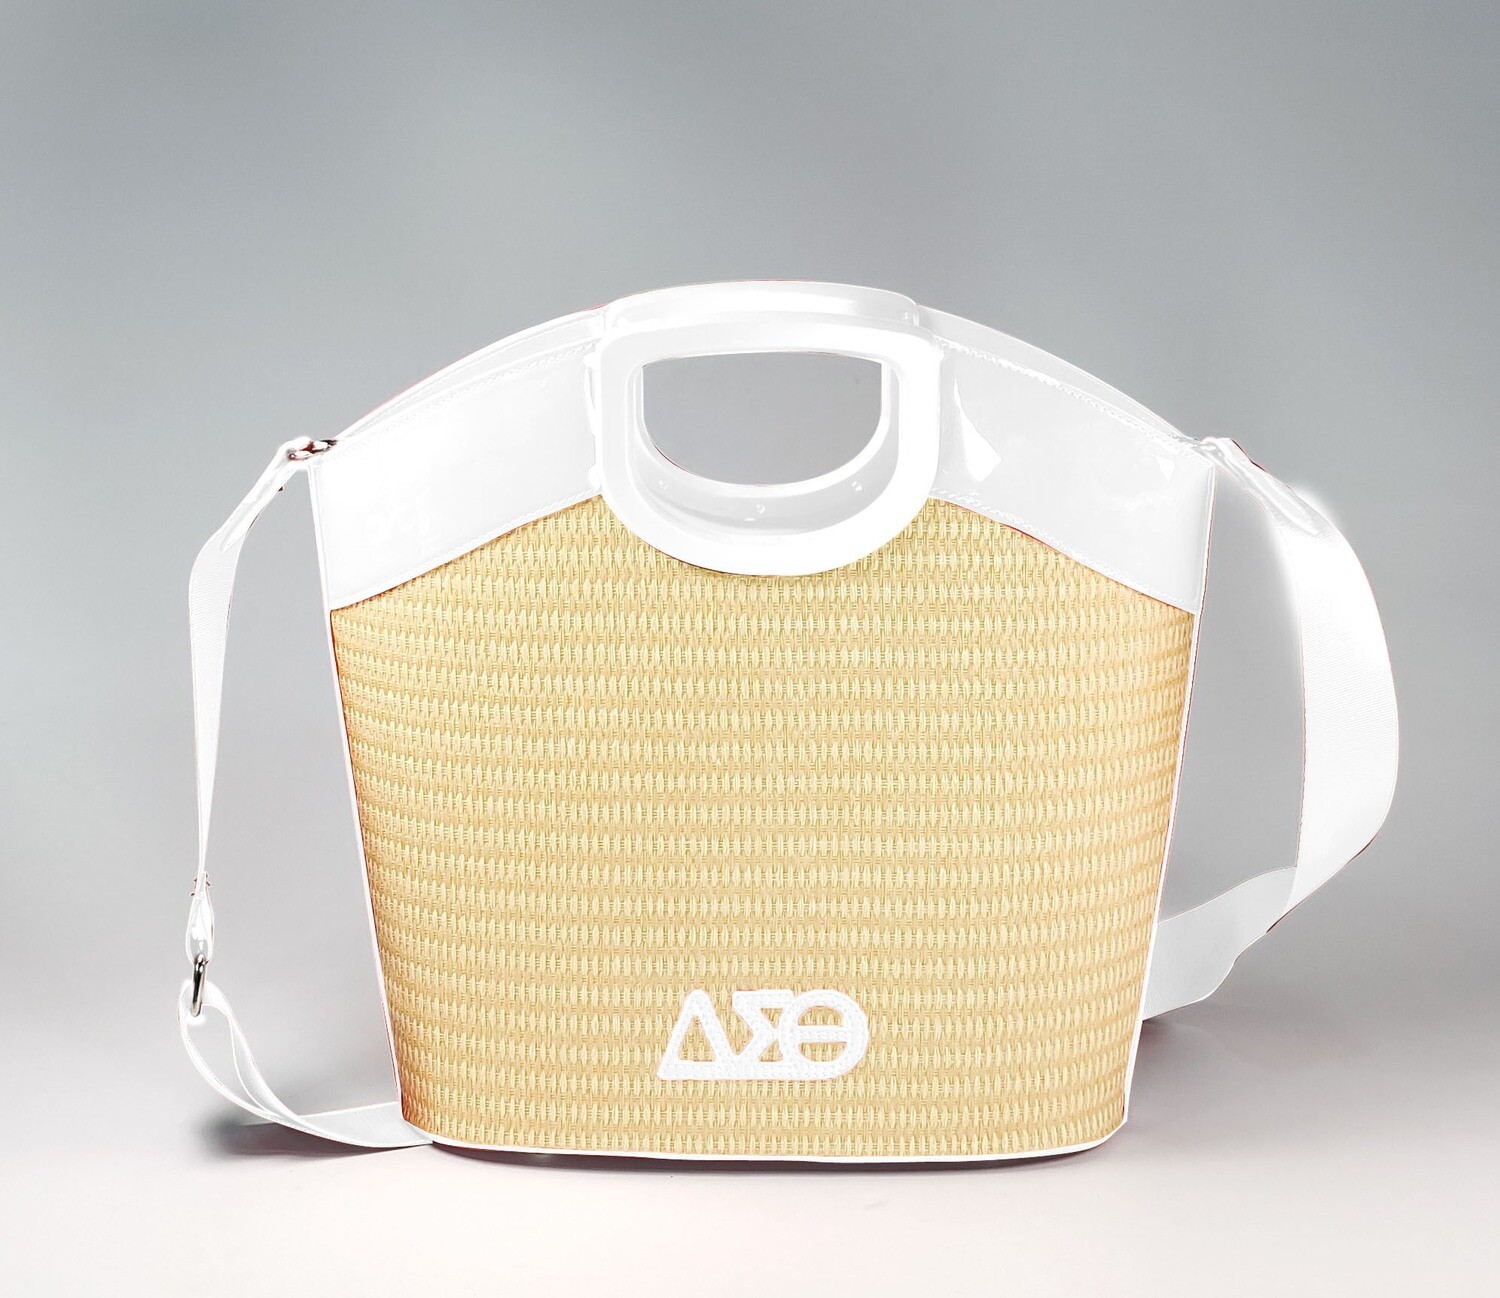 DST 2021 Straw Summer Handbag - White PRE-ORDER - Mid May Delivery